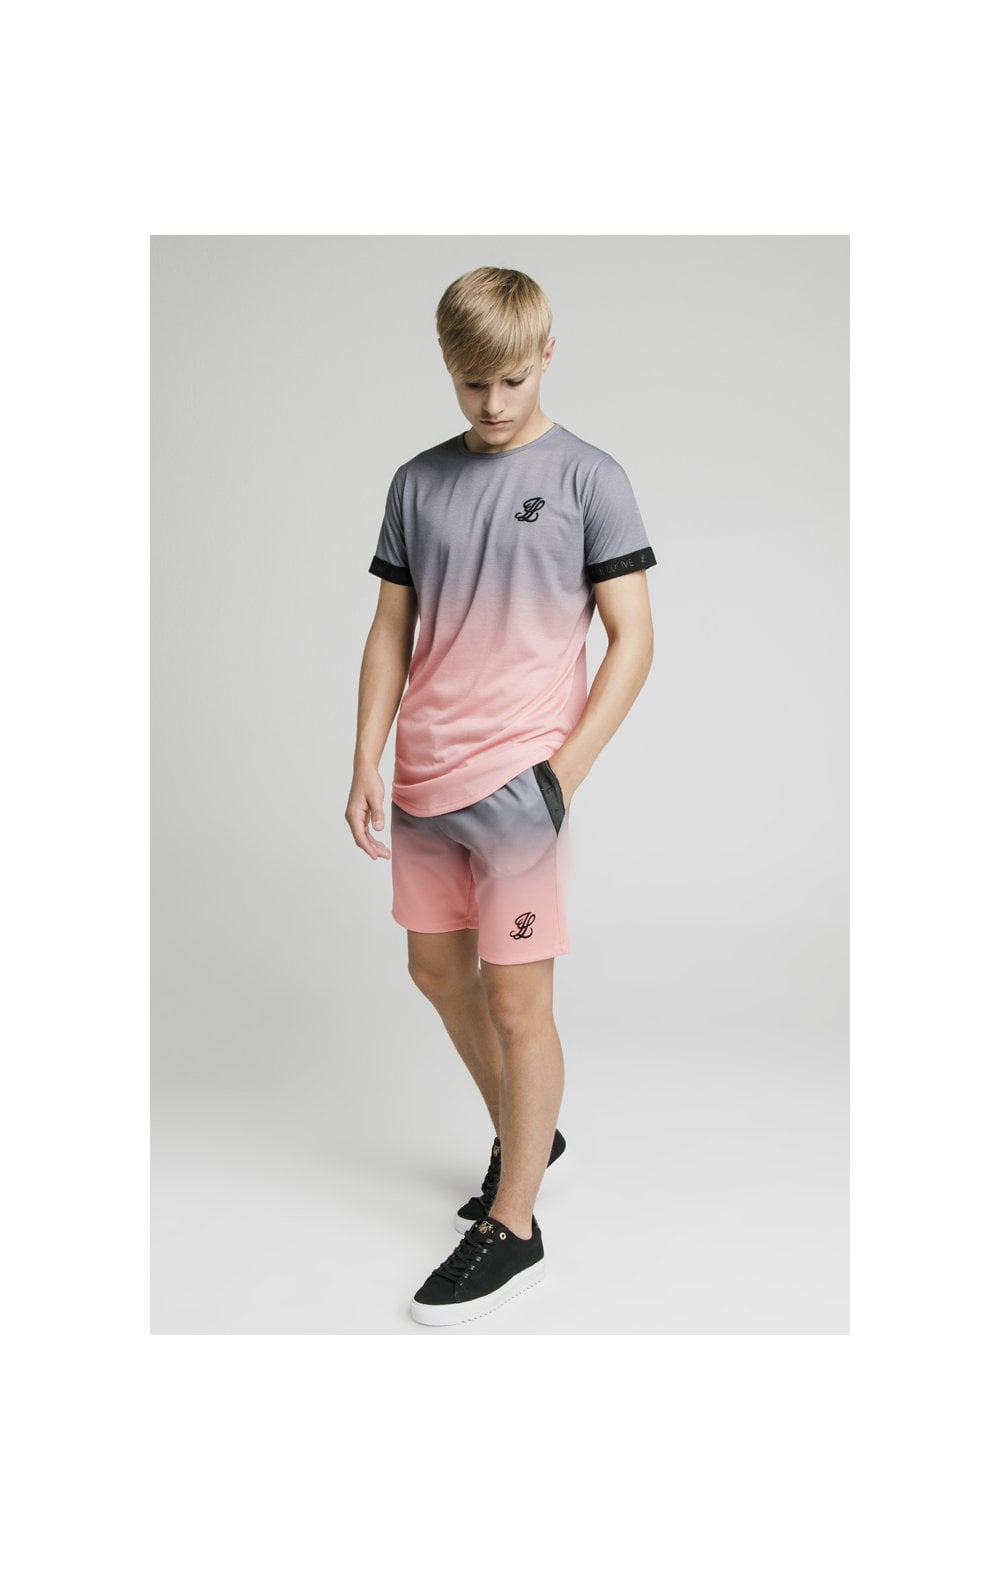 Illusive London Poly Fade Shorts - Grey & Peach (6)